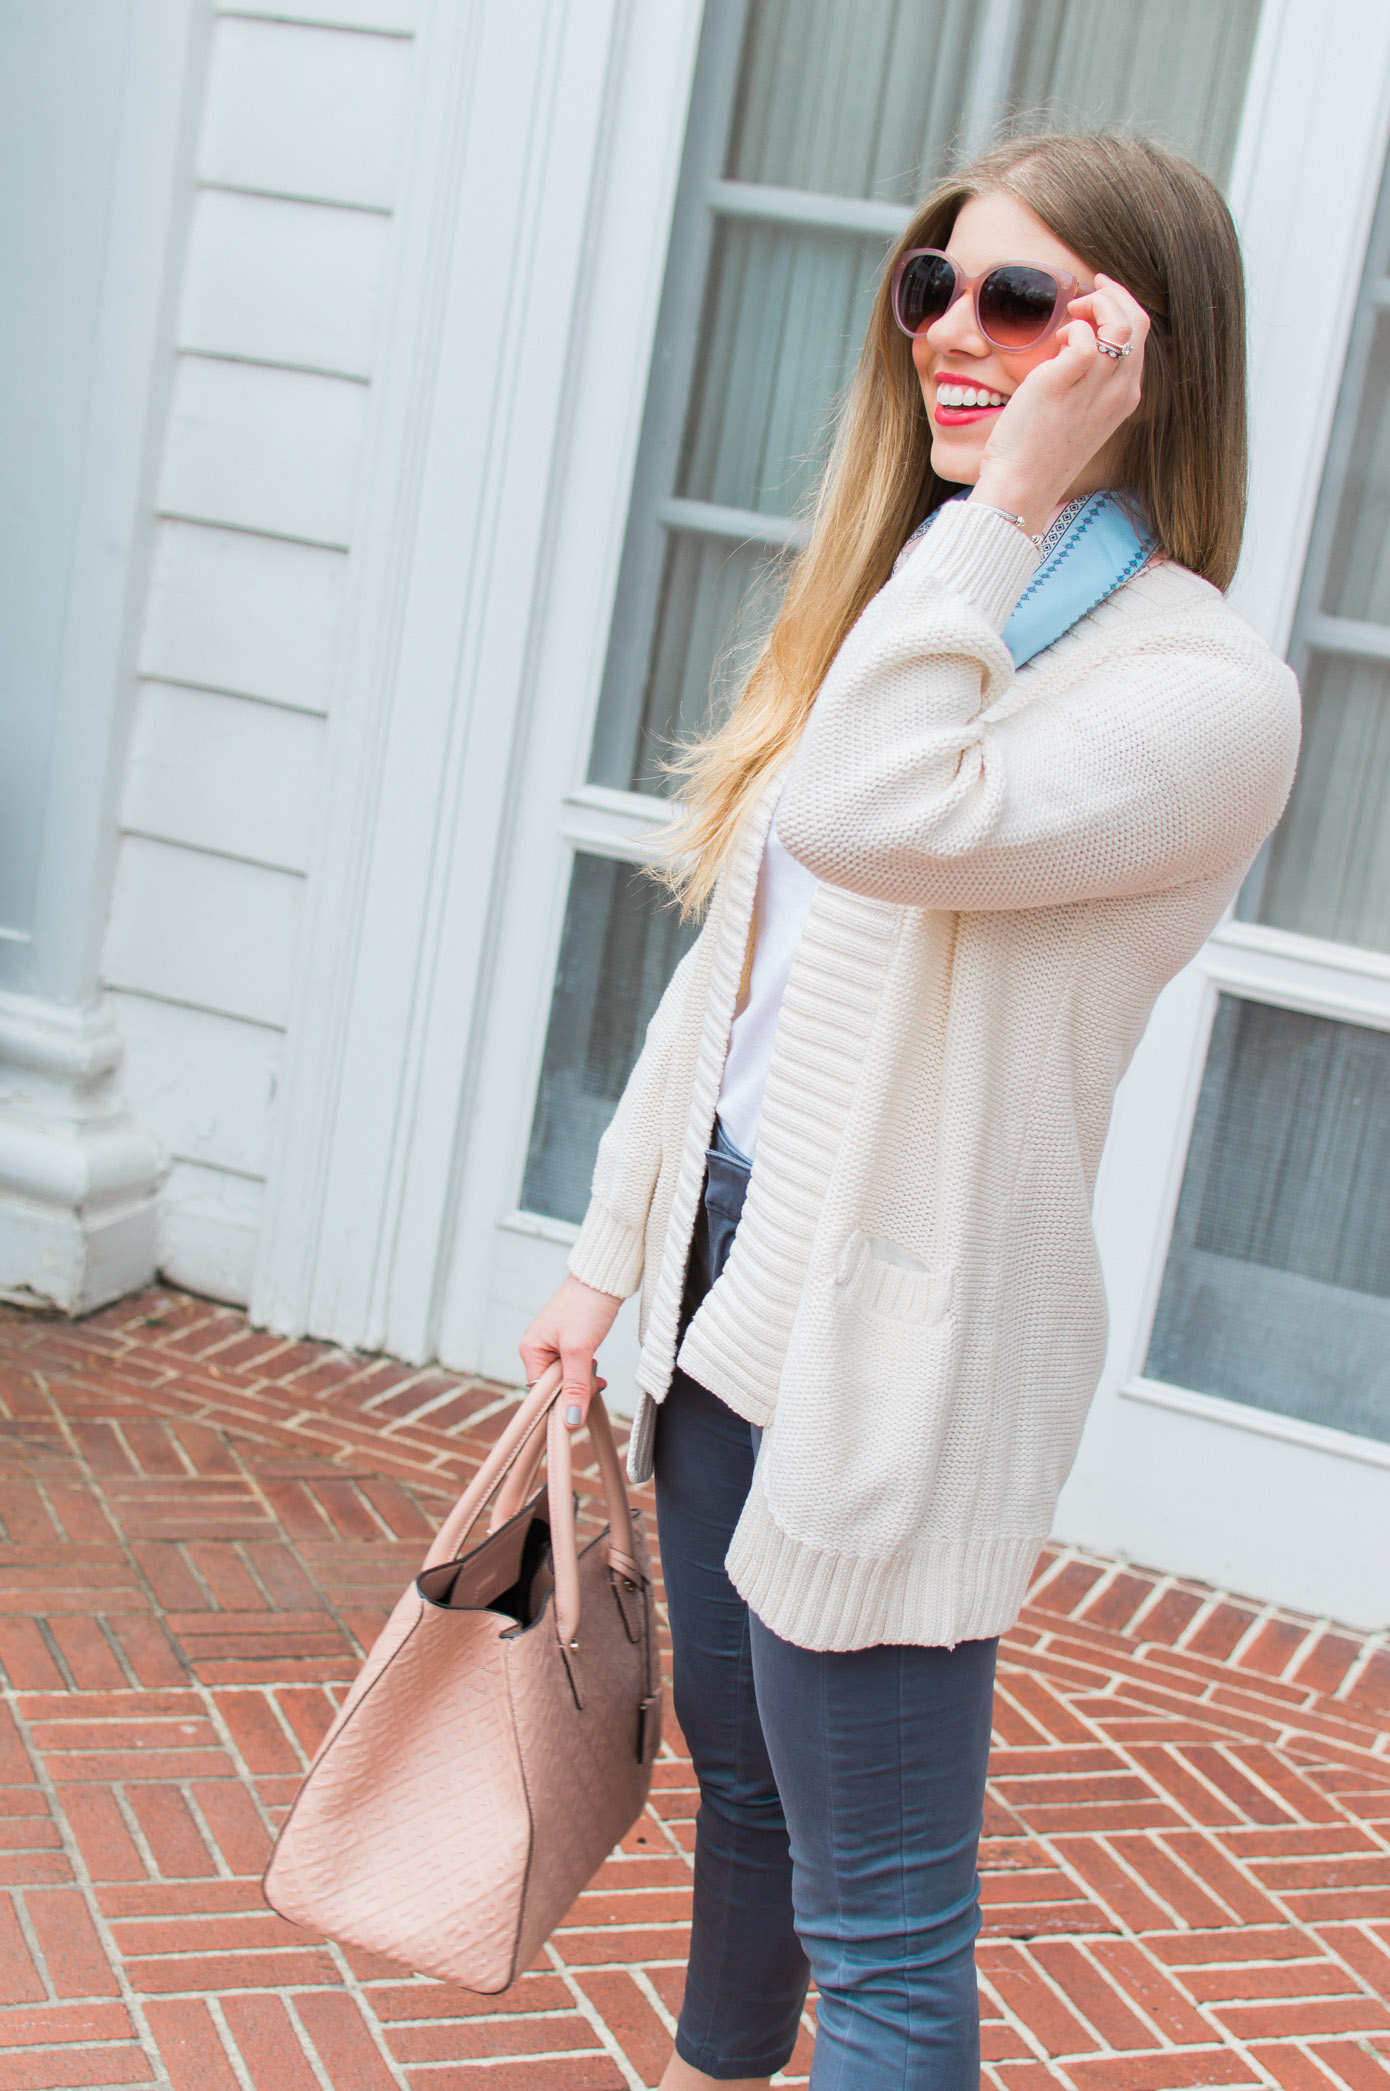 Blush Accessories | Accessories to Transition into Spring | Louella Reese Life & Style Blog